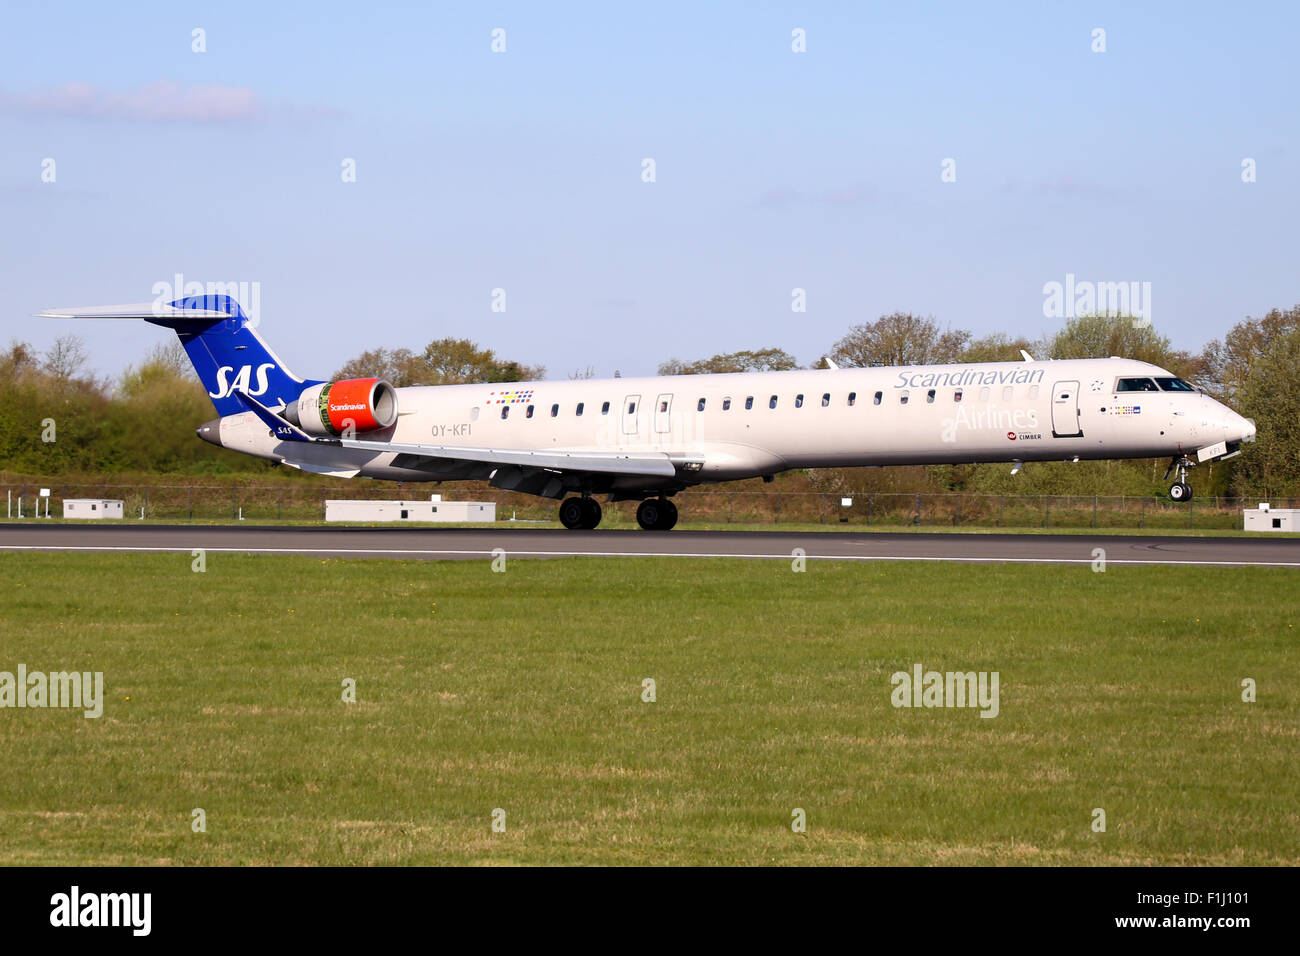 Scandinavian Airlines (SAS) Bombardier CRJ-900 touches down on runway 05L at Manchester airport. - Stock Image